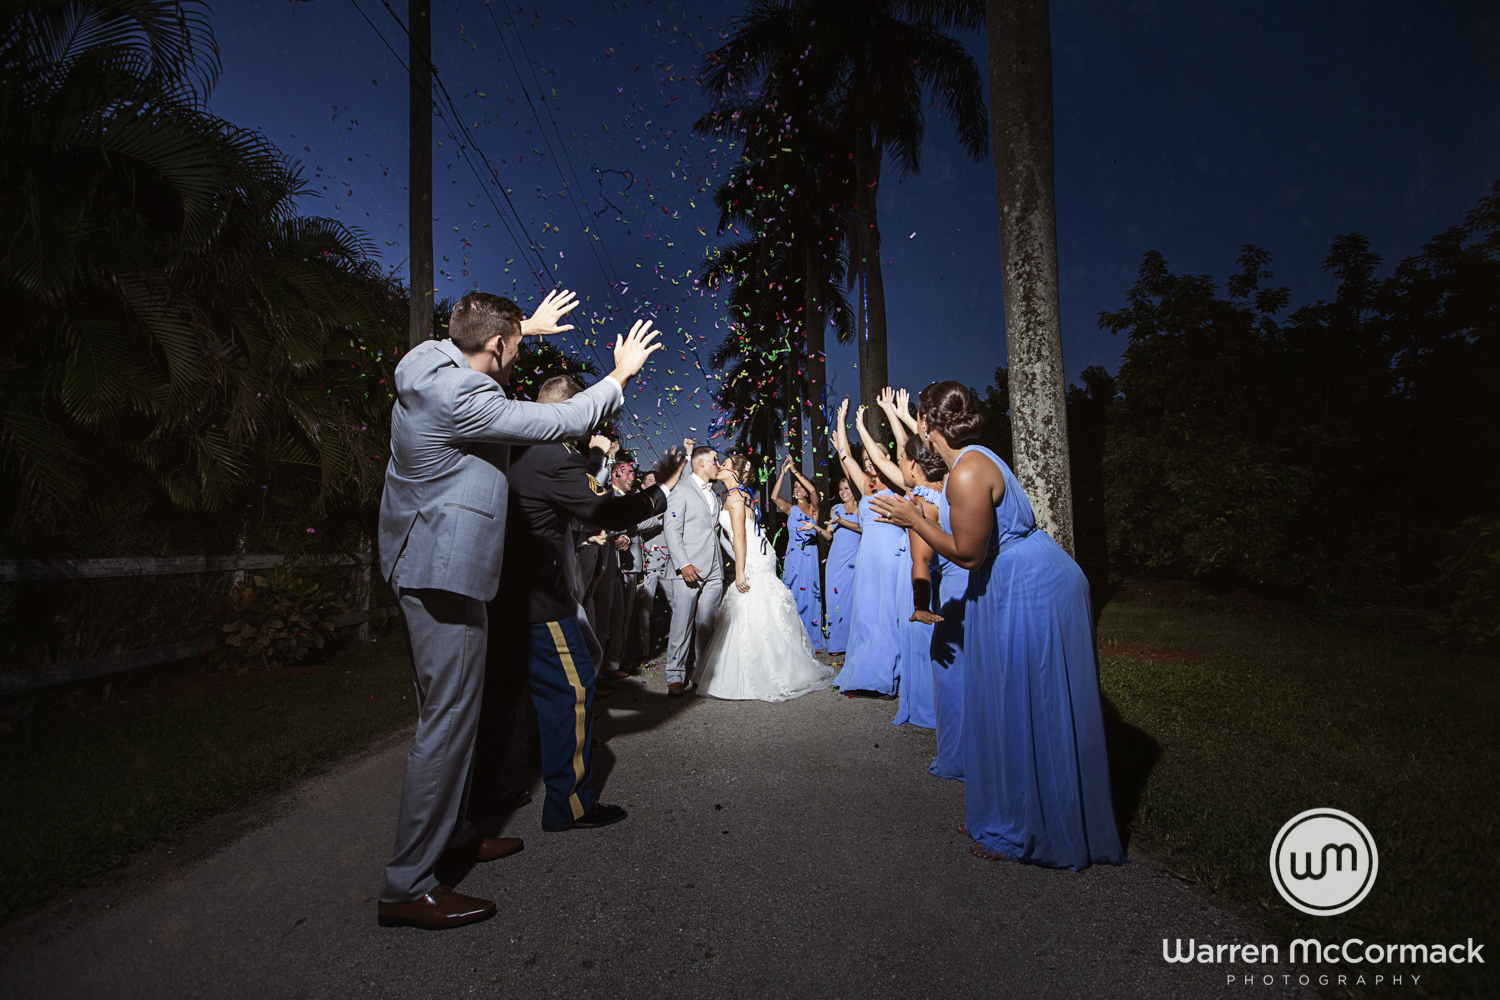 Logan's Place Miami Wedding - Warren McCormack Photographer33.jpg